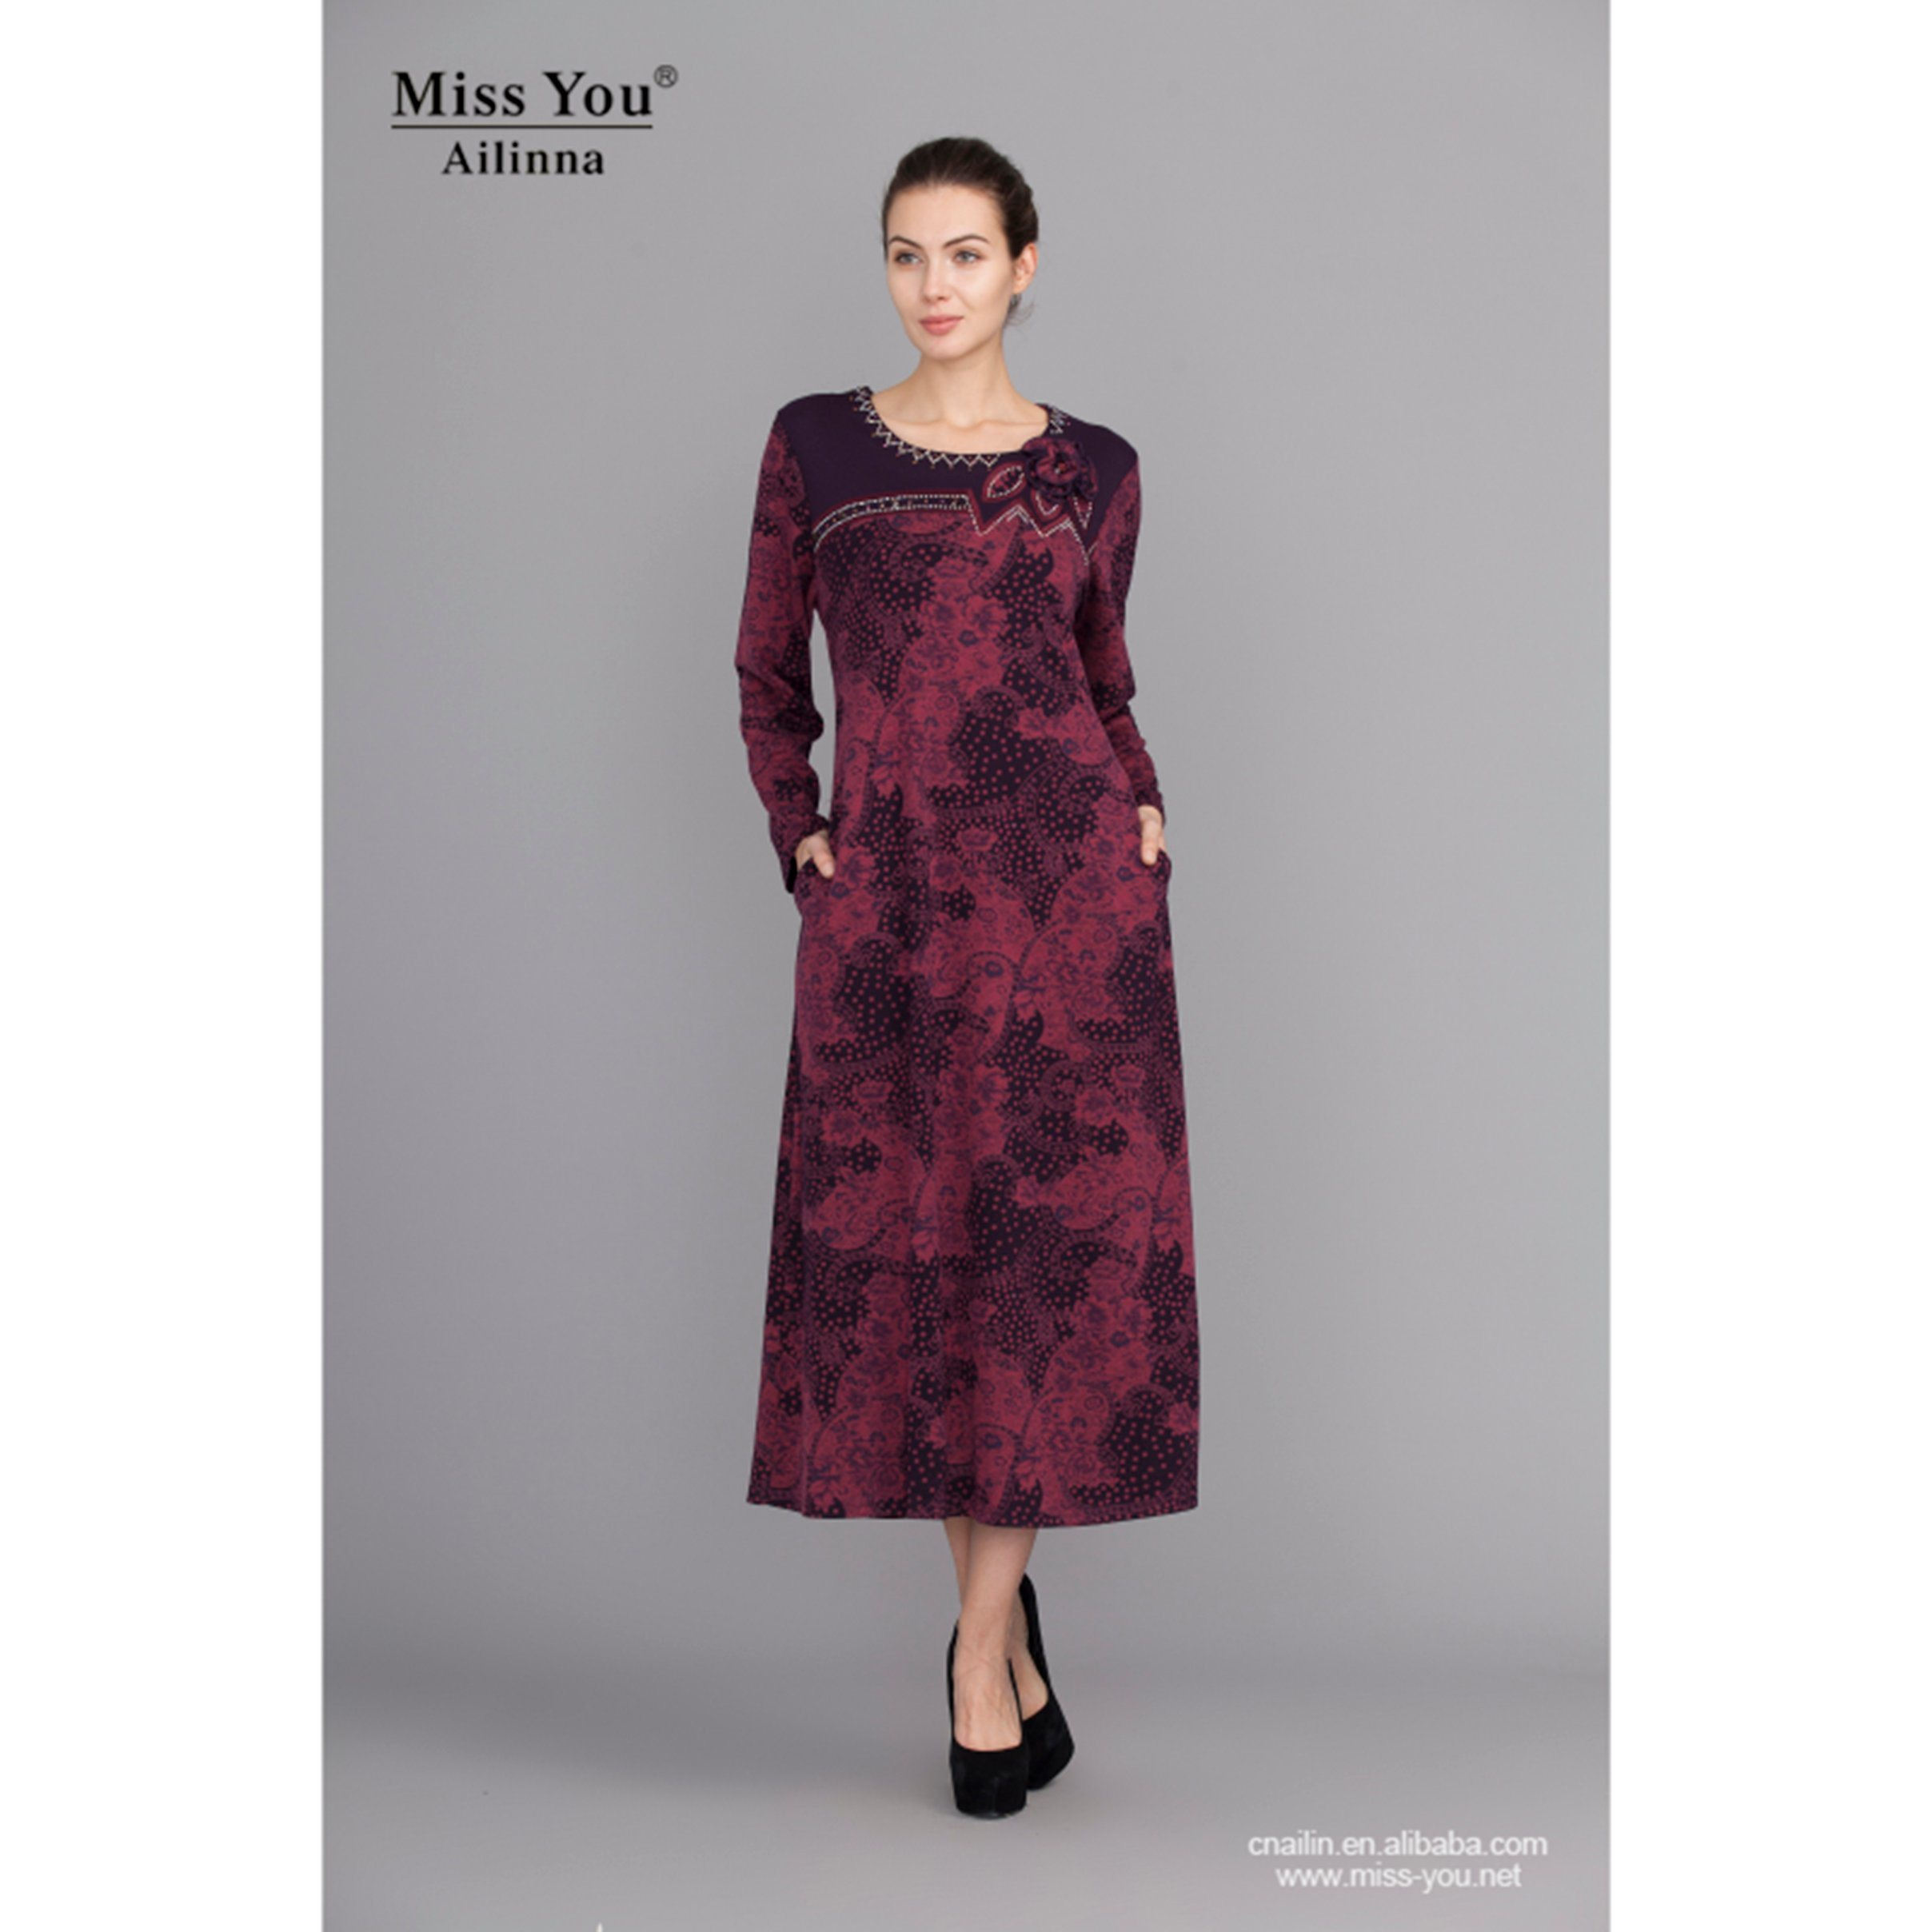 Miss You Ailinna 101221 Ladies Long Sleeve Claret-Red Floral Dress with Bead